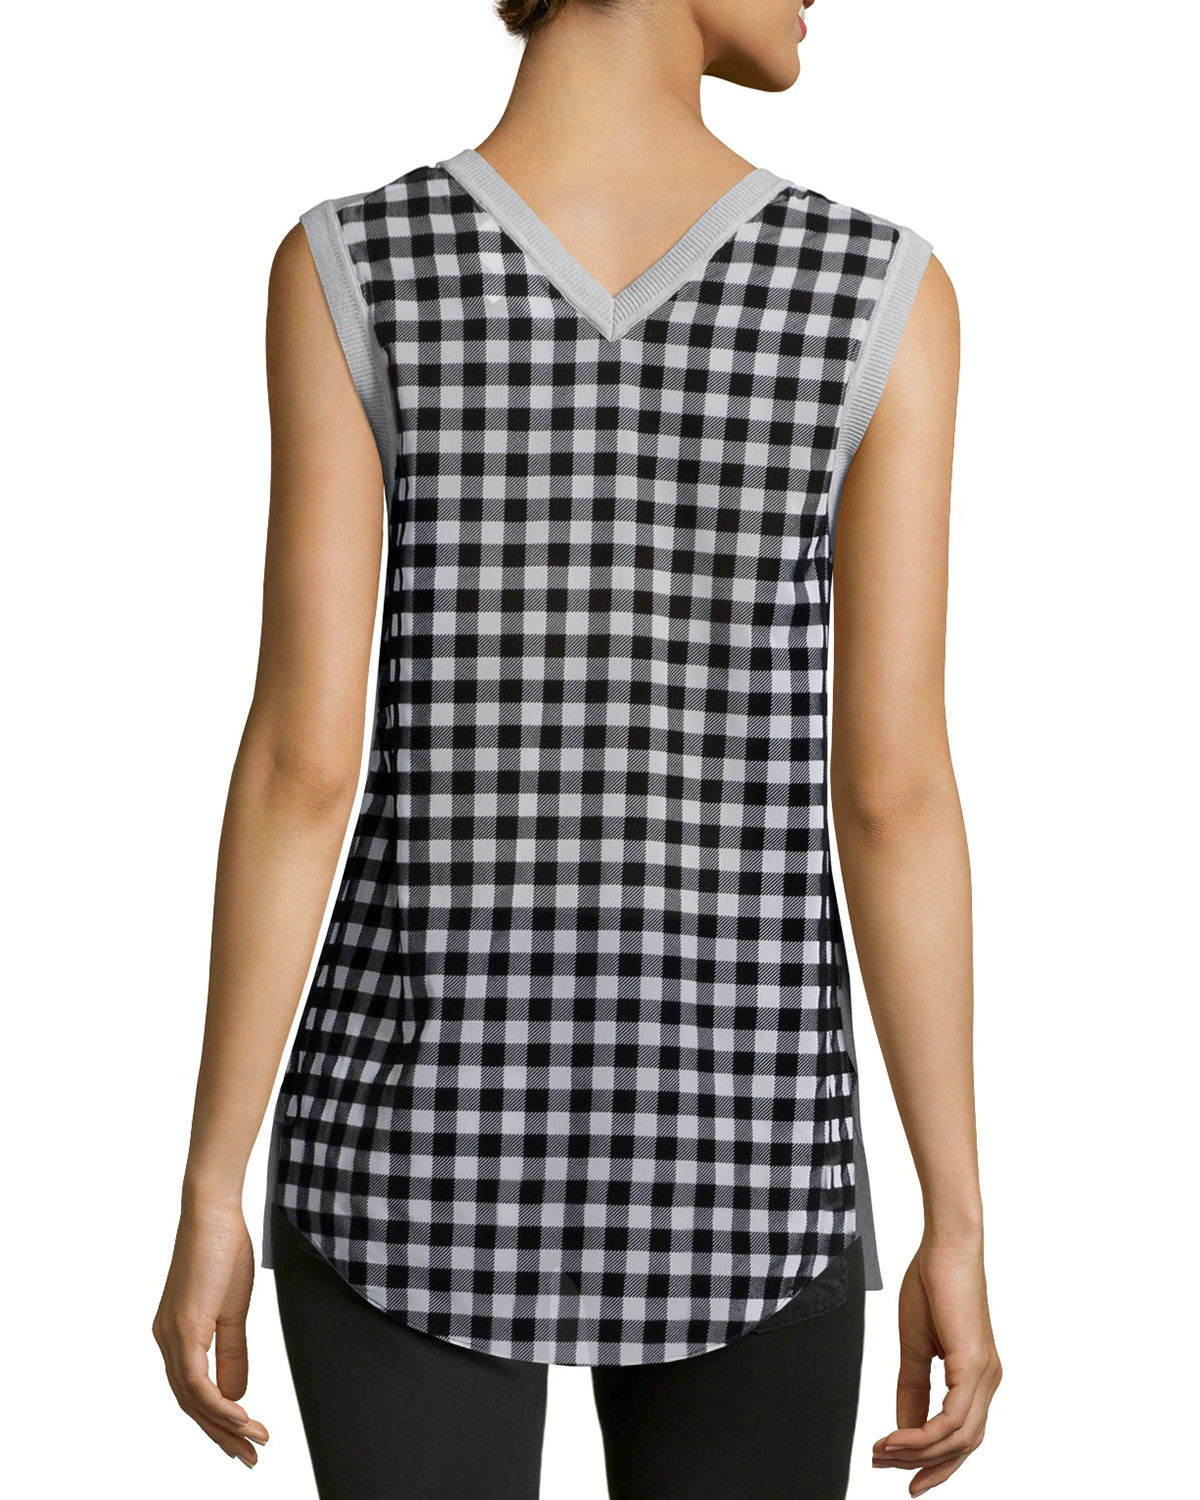 10 crosby derek lam sleeveless v neck knit front plaid back shell in gray lyst. Black Bedroom Furniture Sets. Home Design Ideas